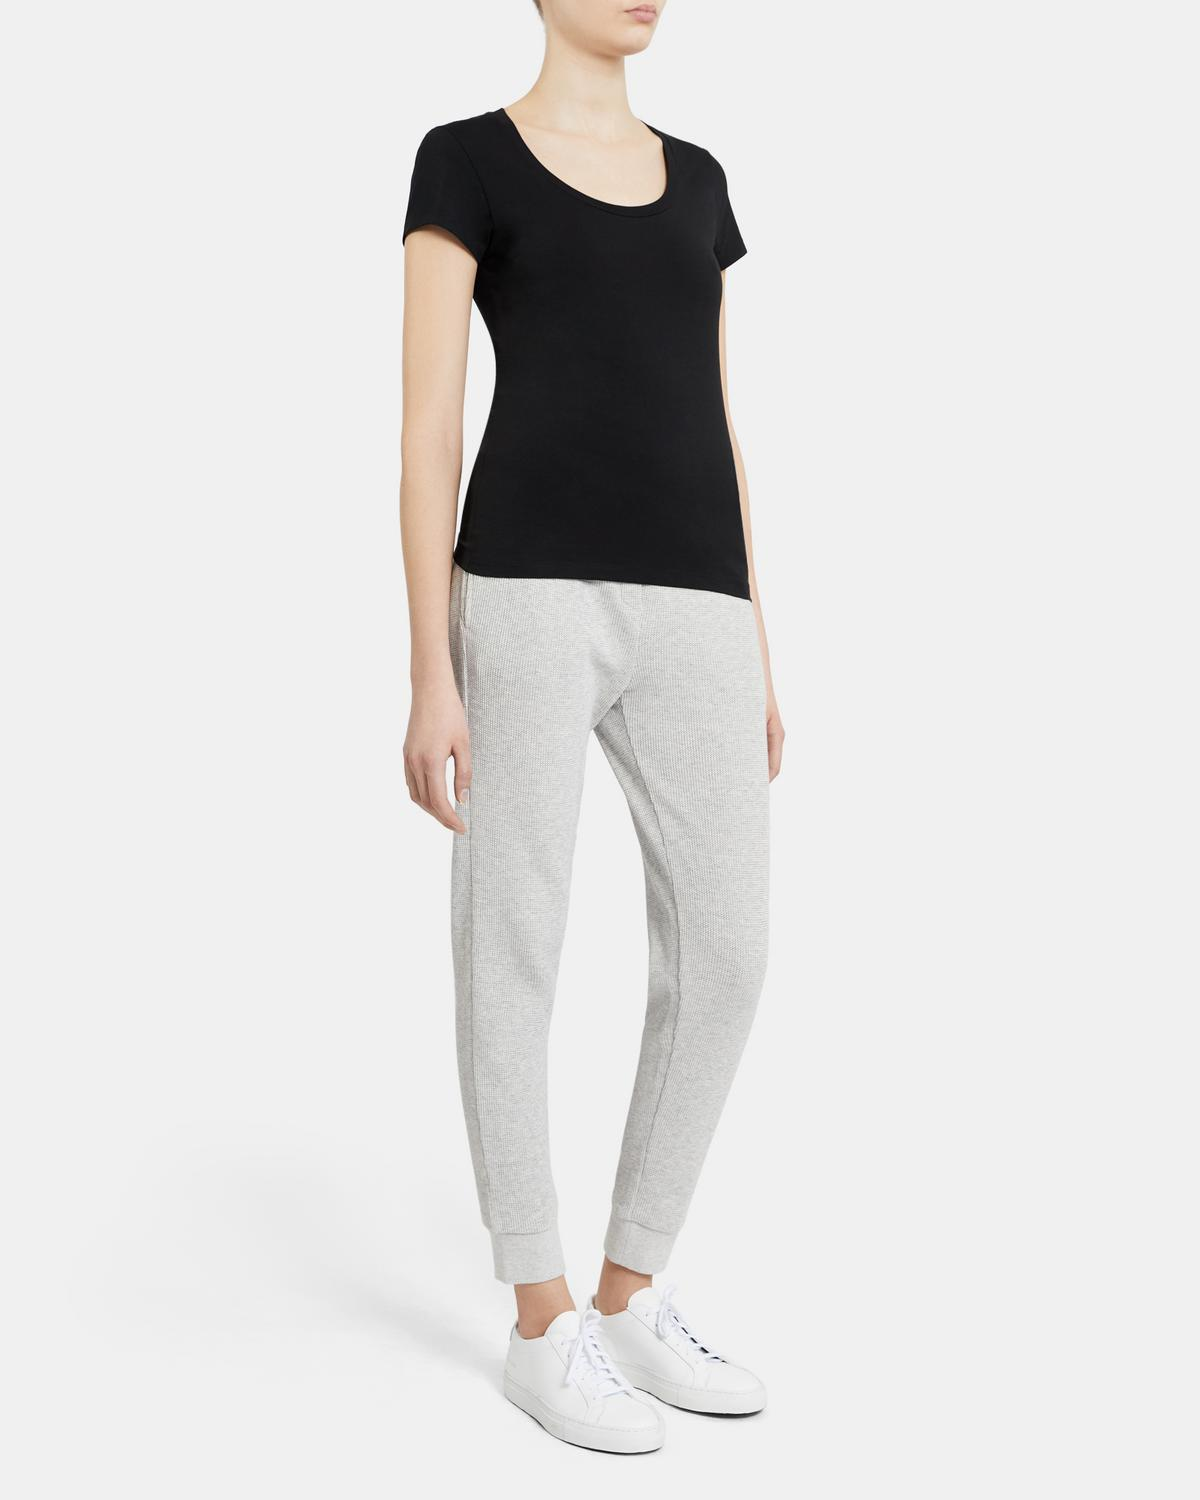 Juin Short-Sleeve Tee In Stretch Cotton